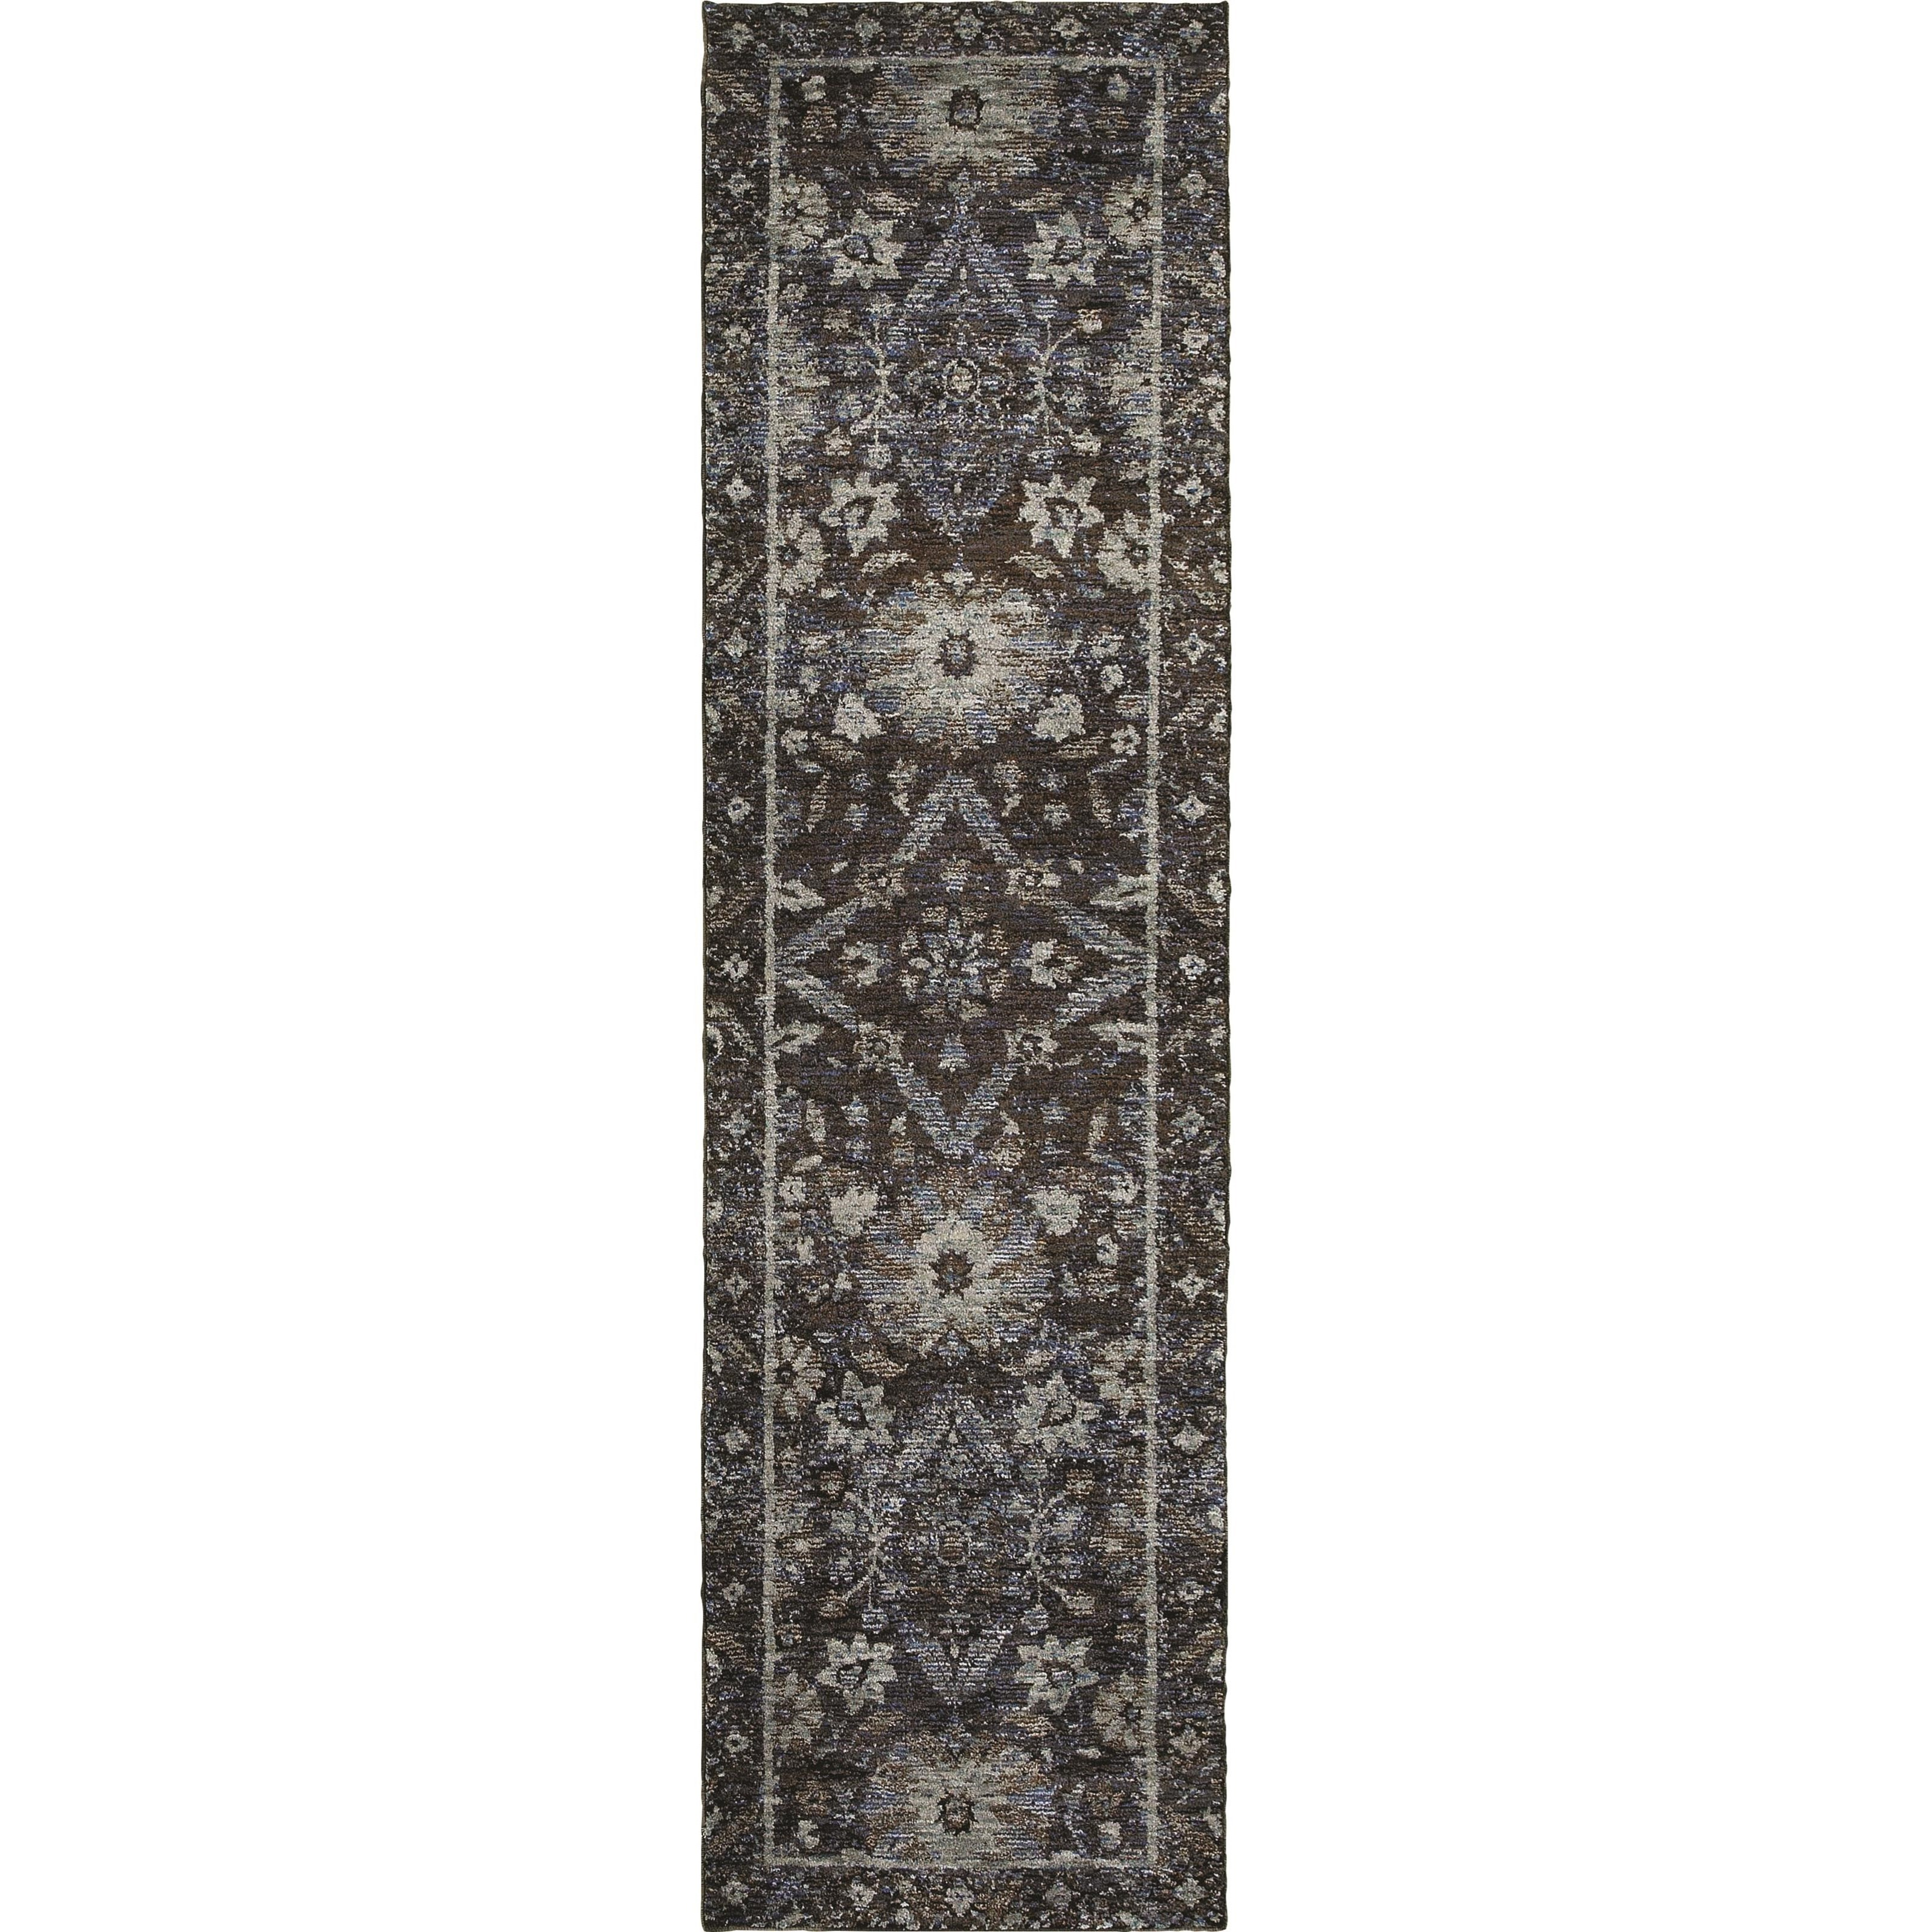 "Andorra 2' 3"" X  8' 0"" Casual Navy/ Blue Runner Rug by Oriental Weavers at Steger's Furniture"